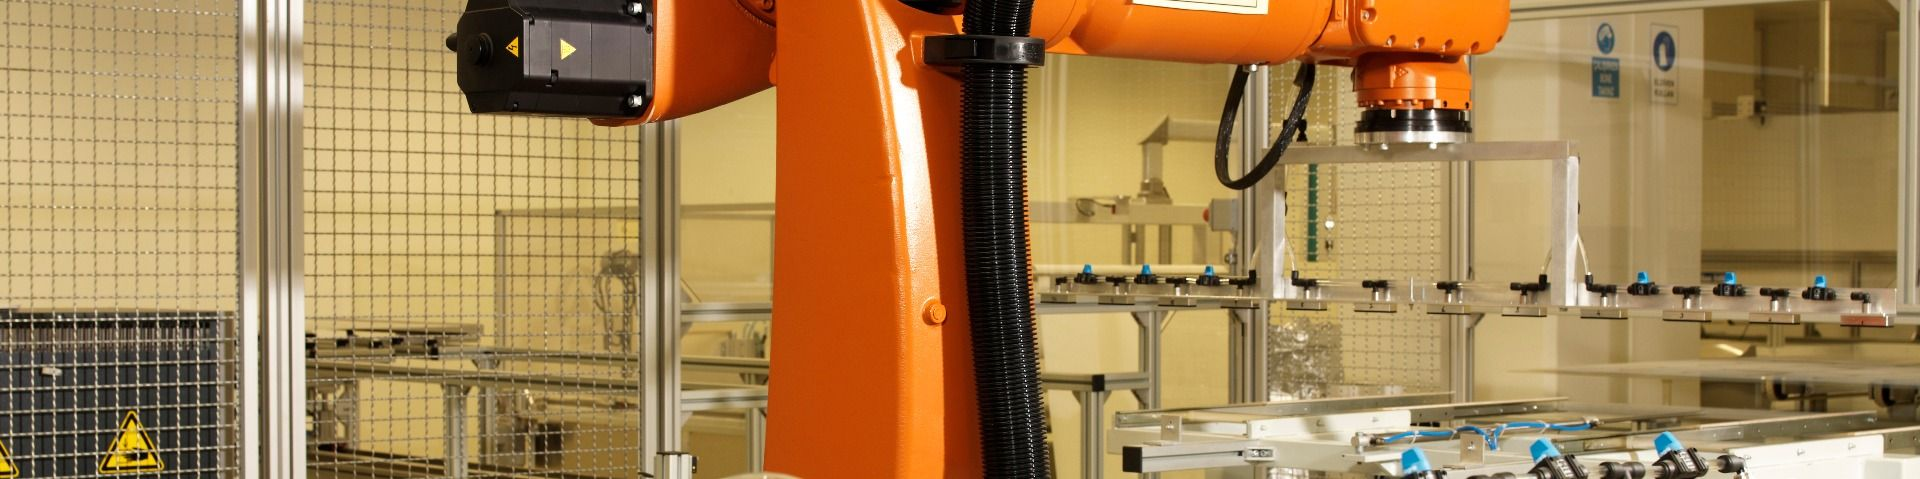 Conveyors and Robots to Link Machines